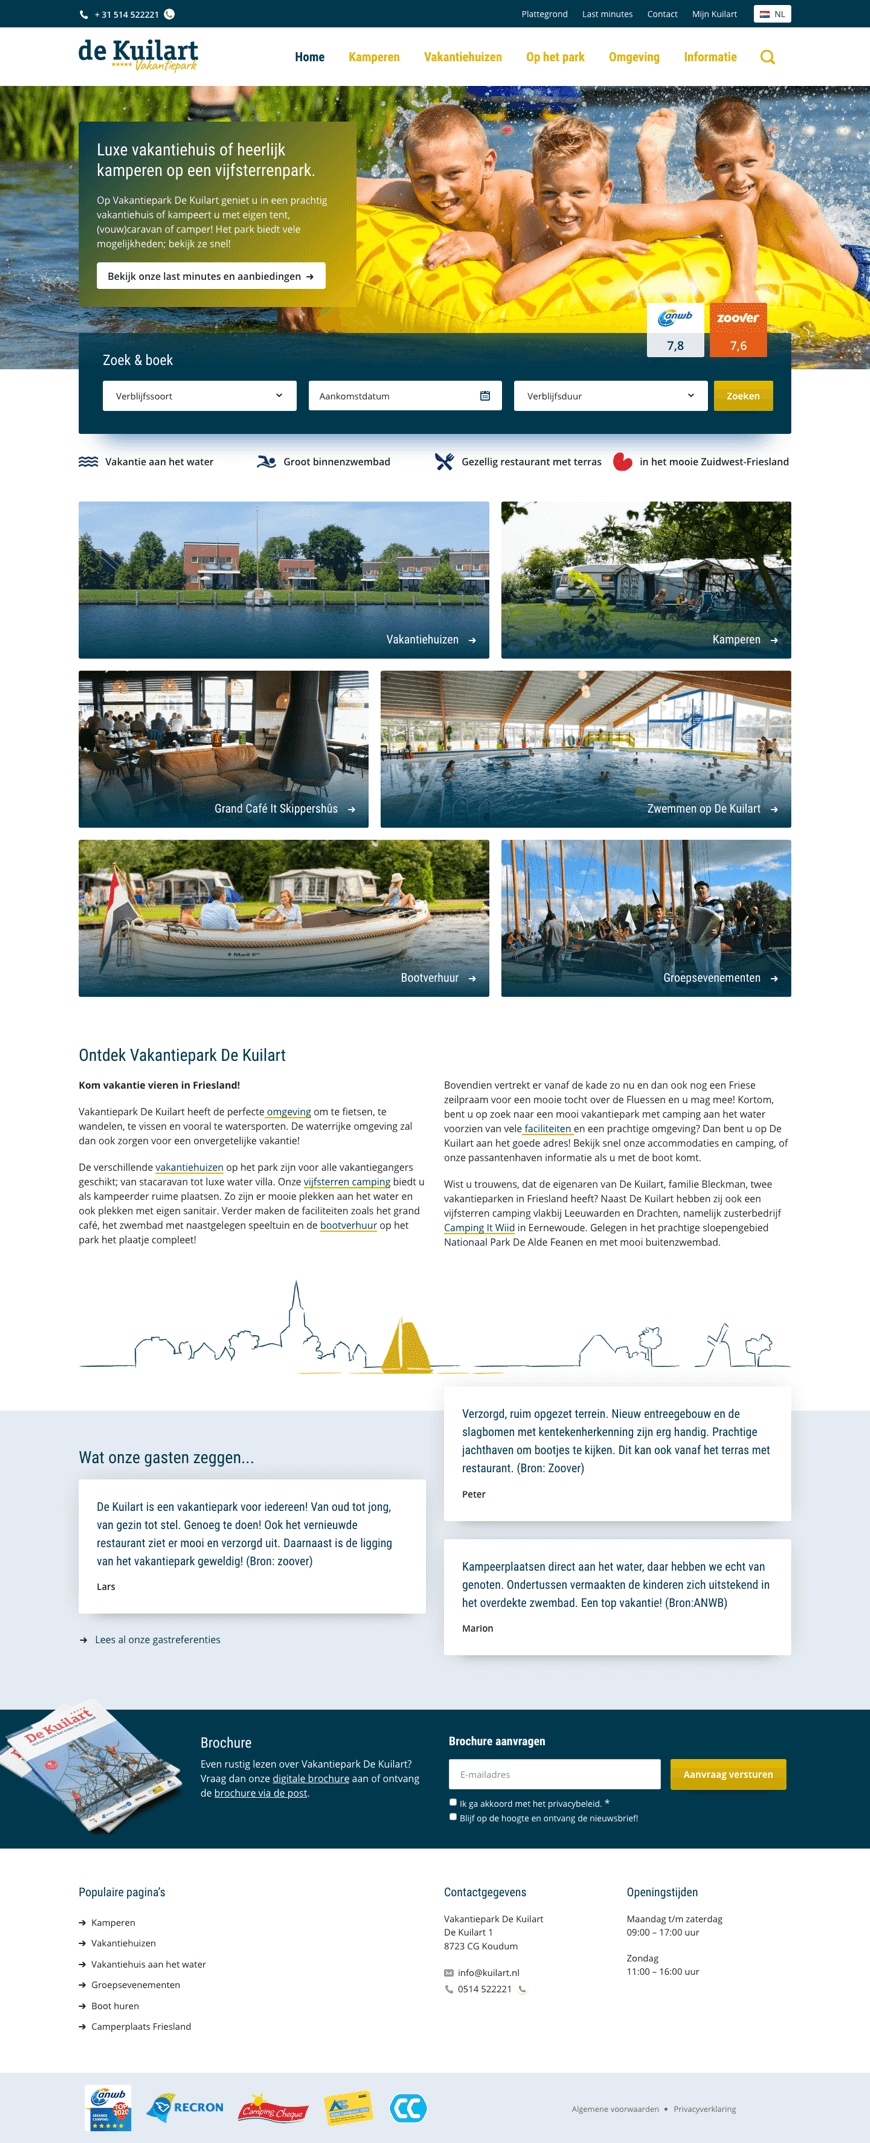 WordPress website voor De Kuilart